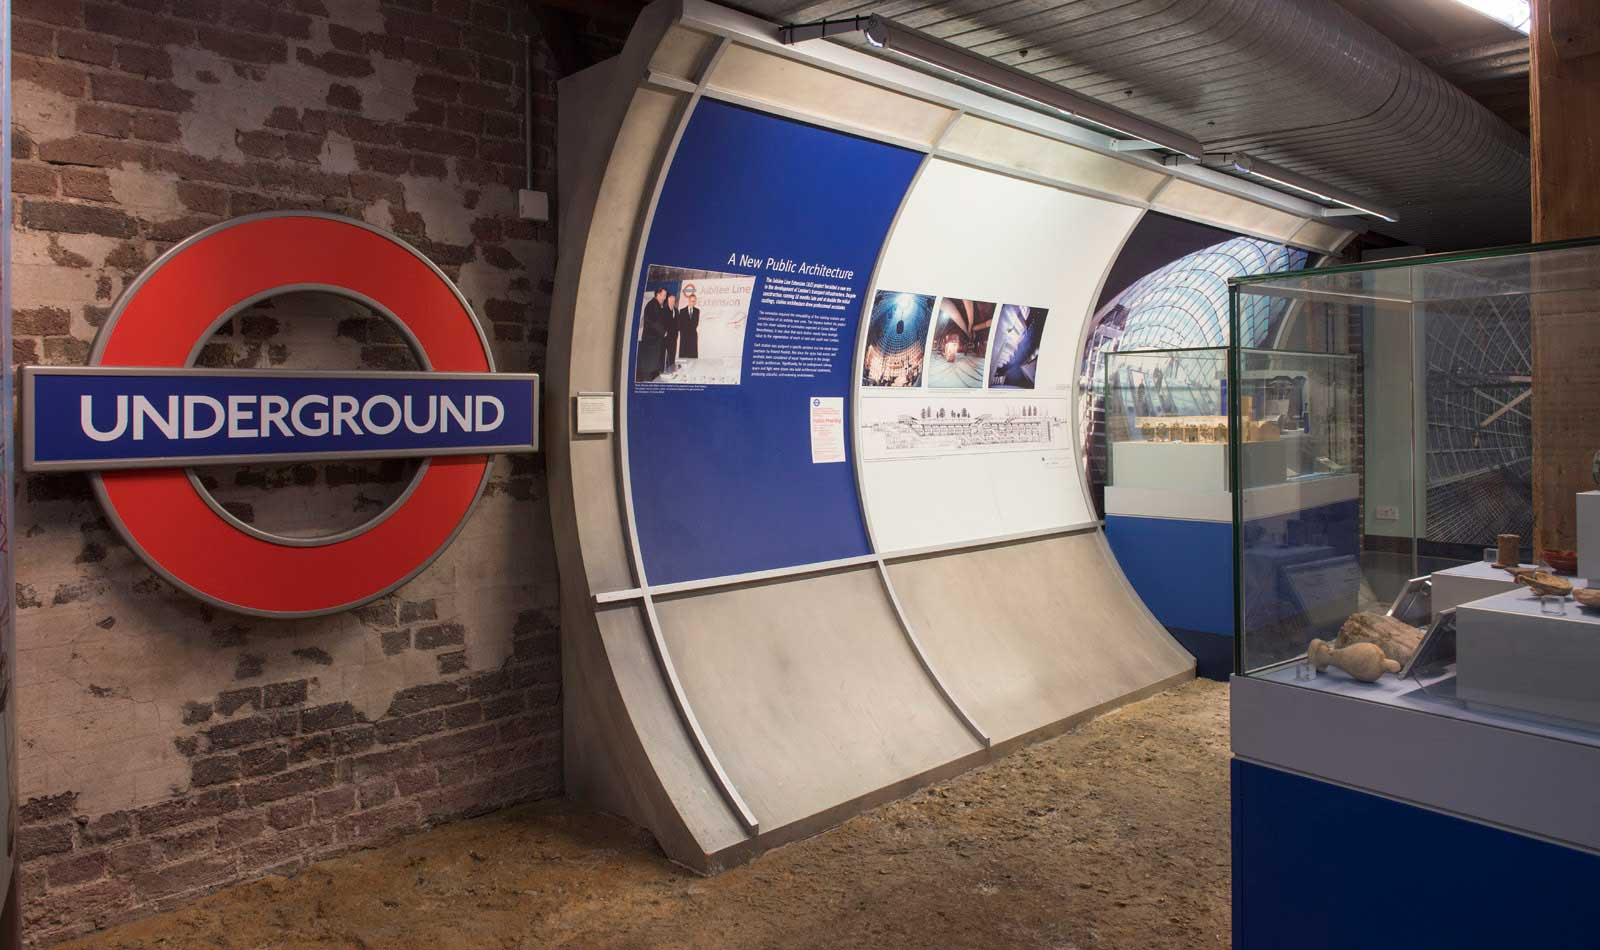 Reconstructed London Underground station in Museum of London Docklands.